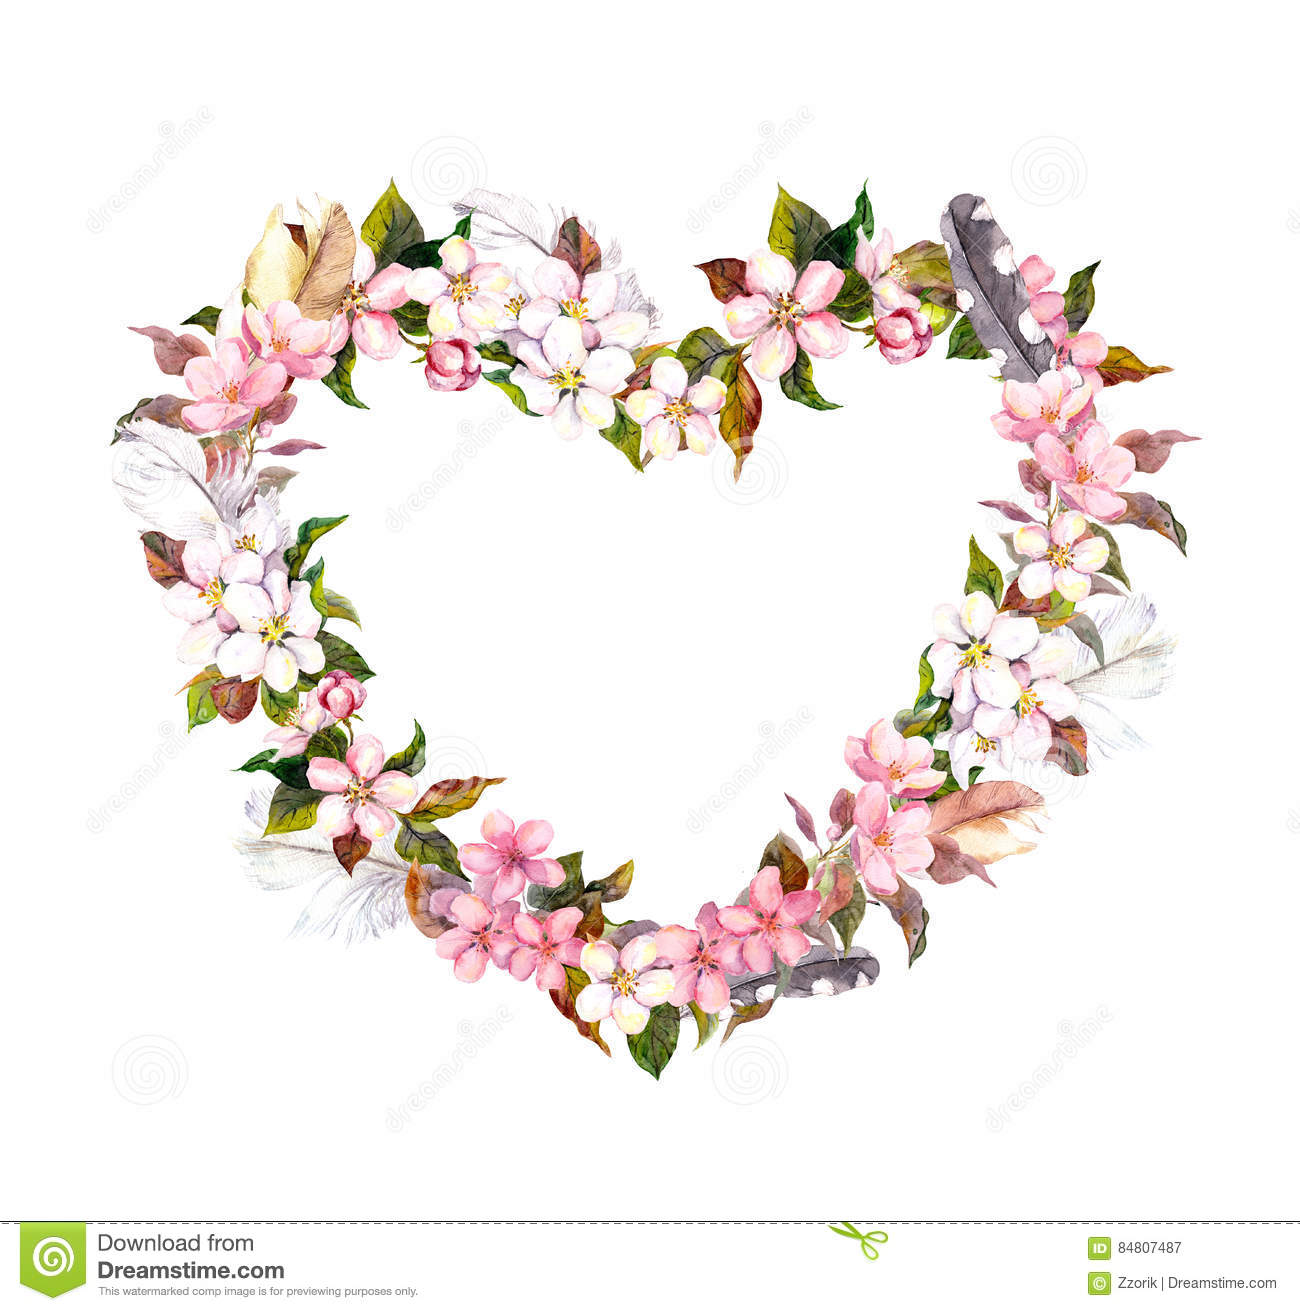 Floral Wreath Heart Shape Pink Flowers And Feathers Watercolor